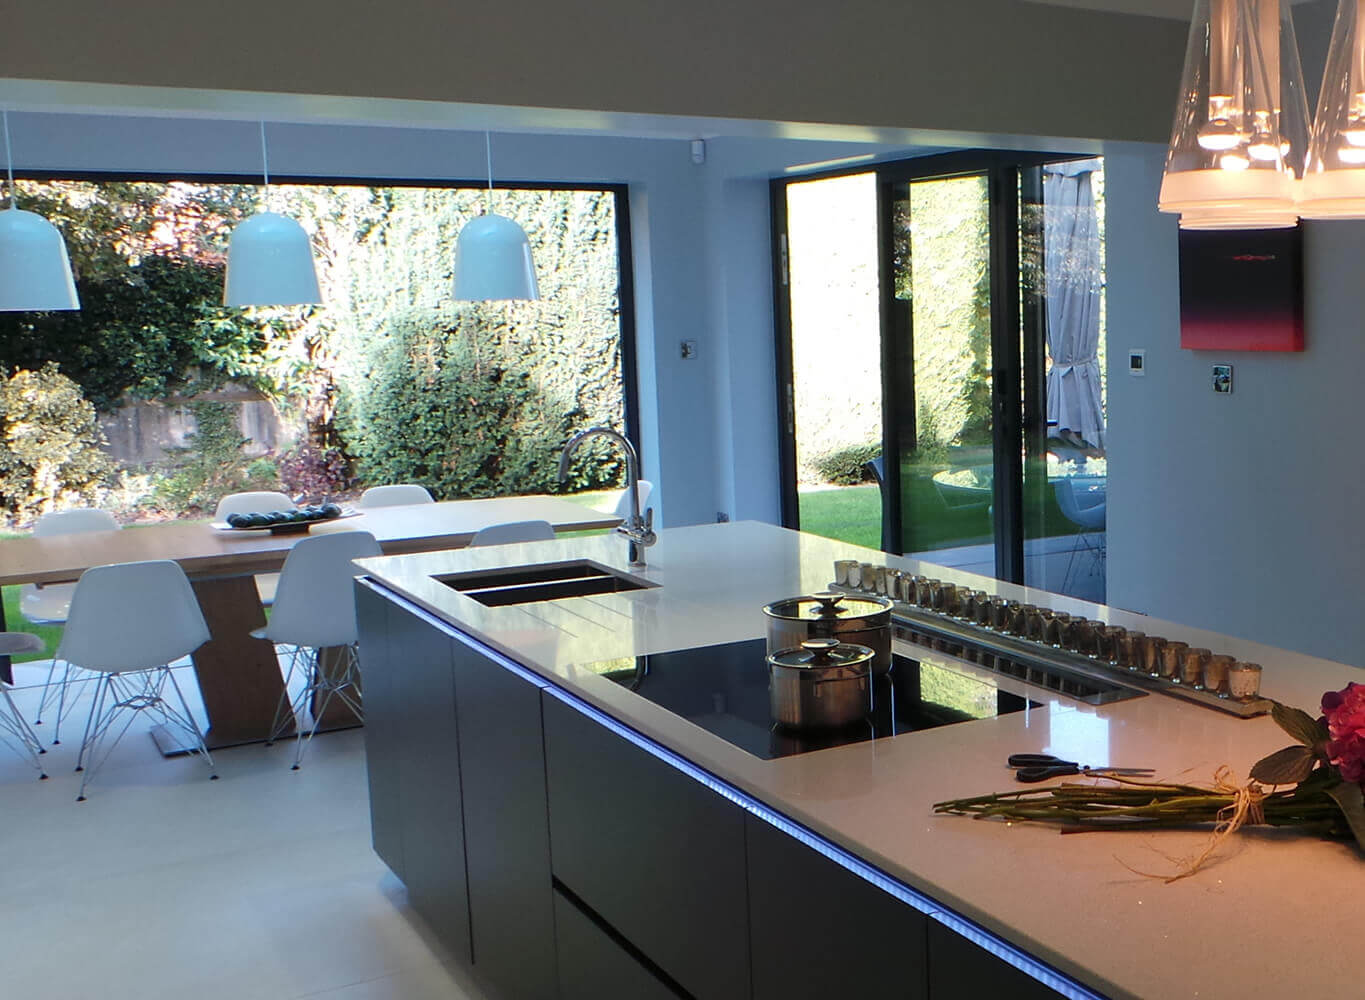 kitchen with an open door into the garden